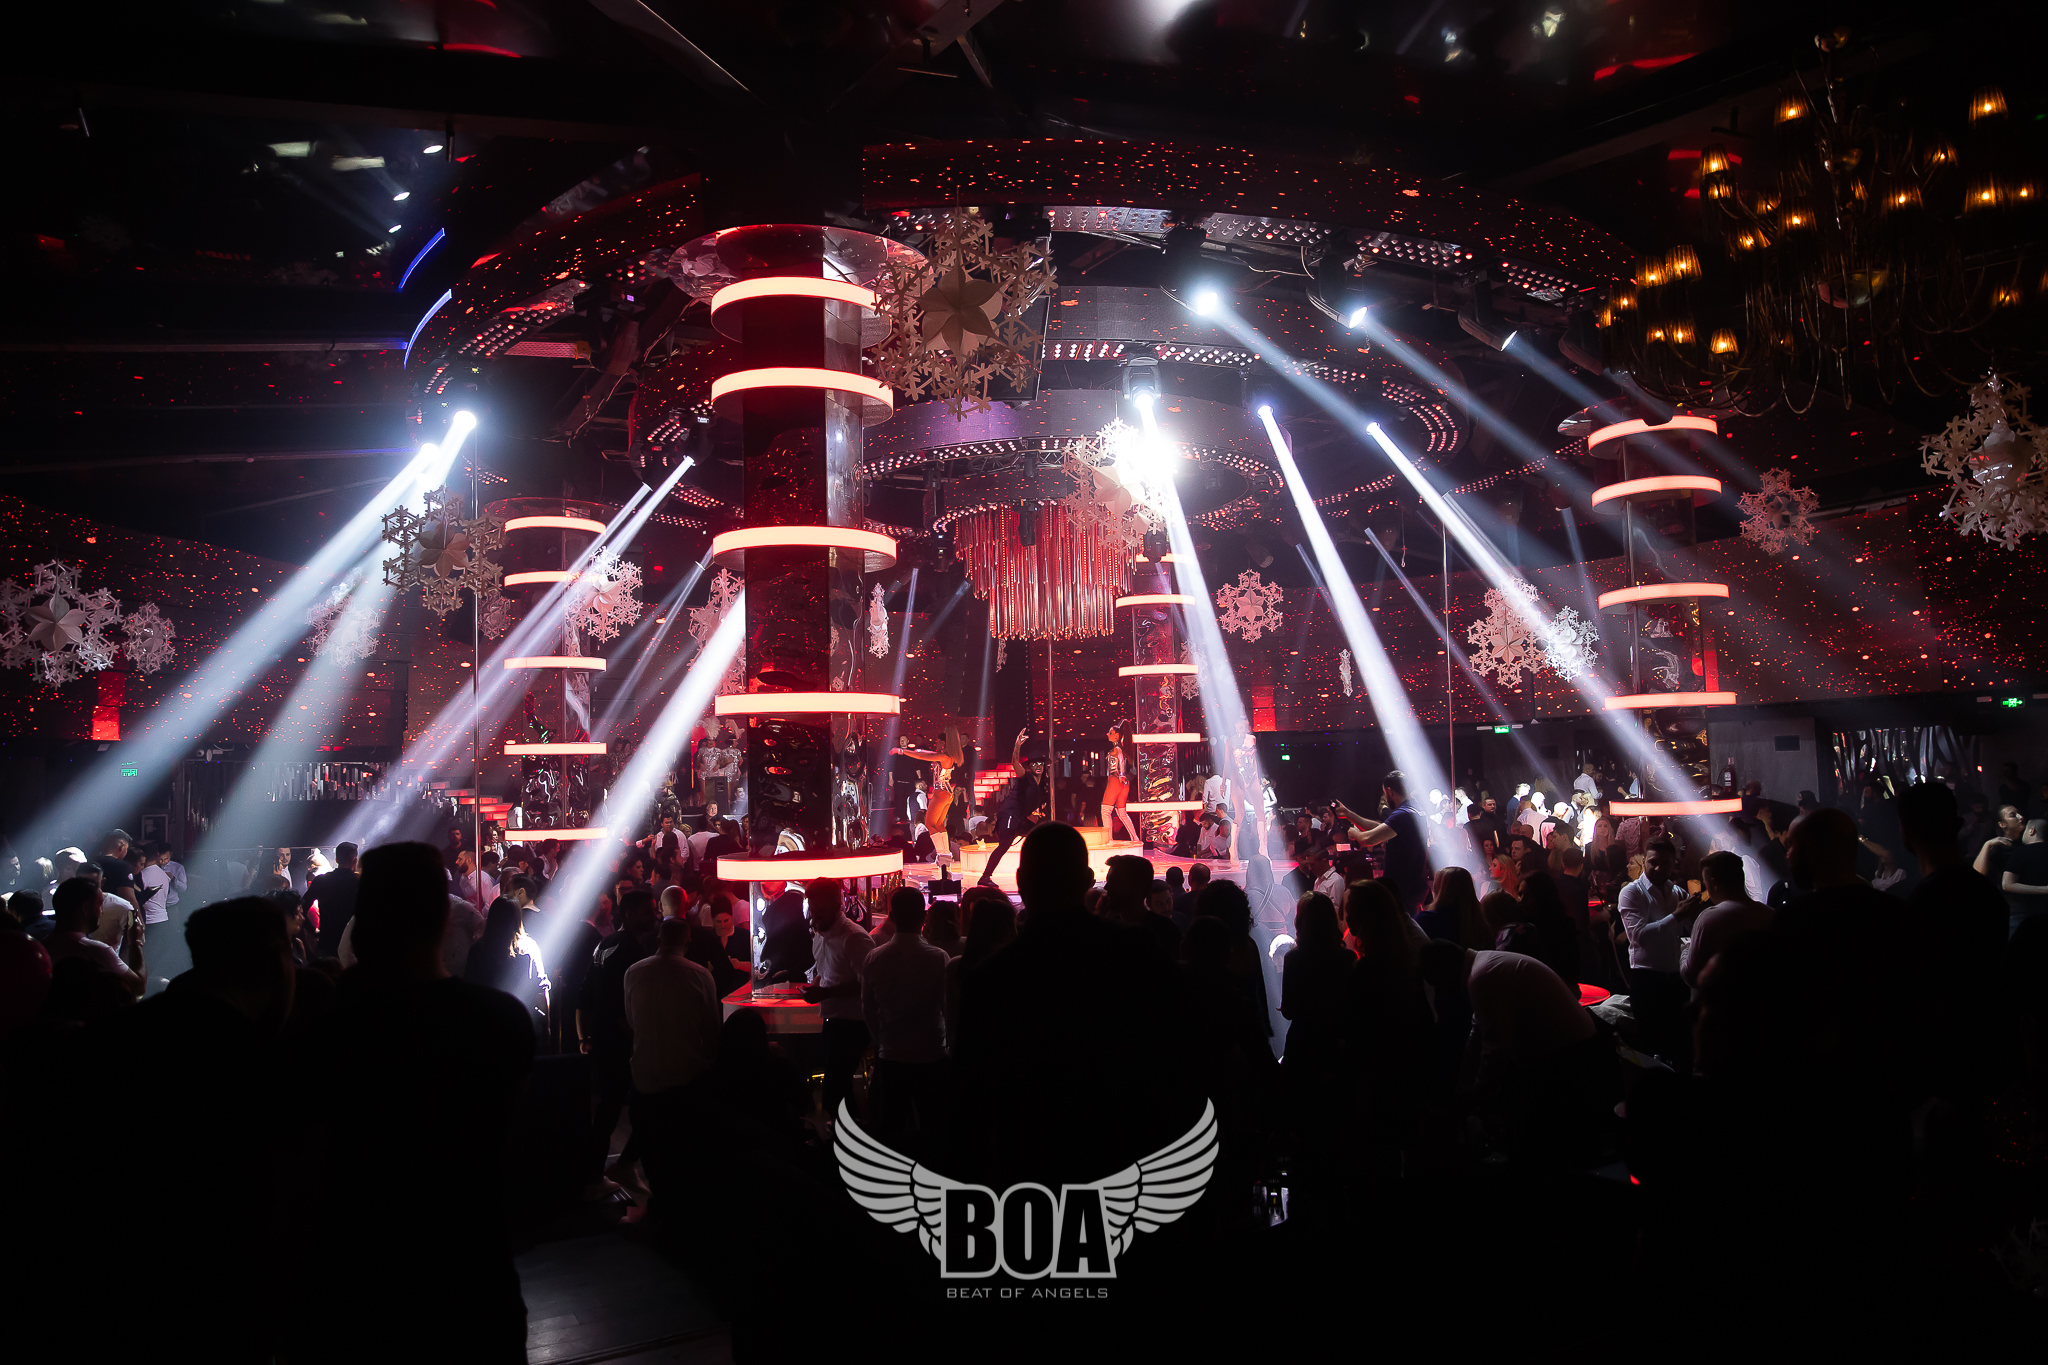 Boa Beat Of Angels Club Bucharest